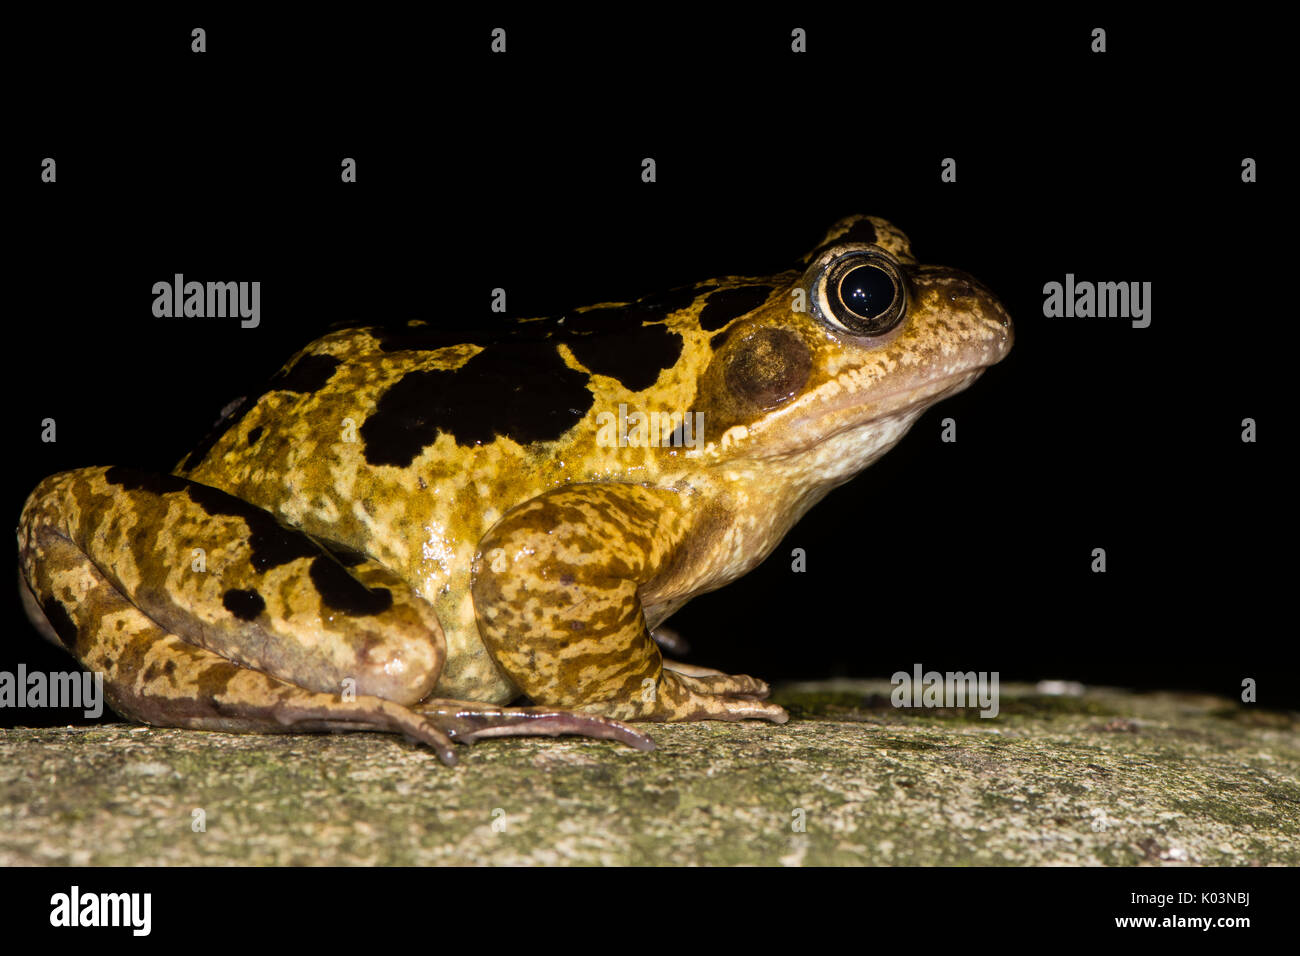 Common frog (Rana temporaria) with bold markings. Brightly marked amphibian in the family Ranidae, against black background - Stock Image